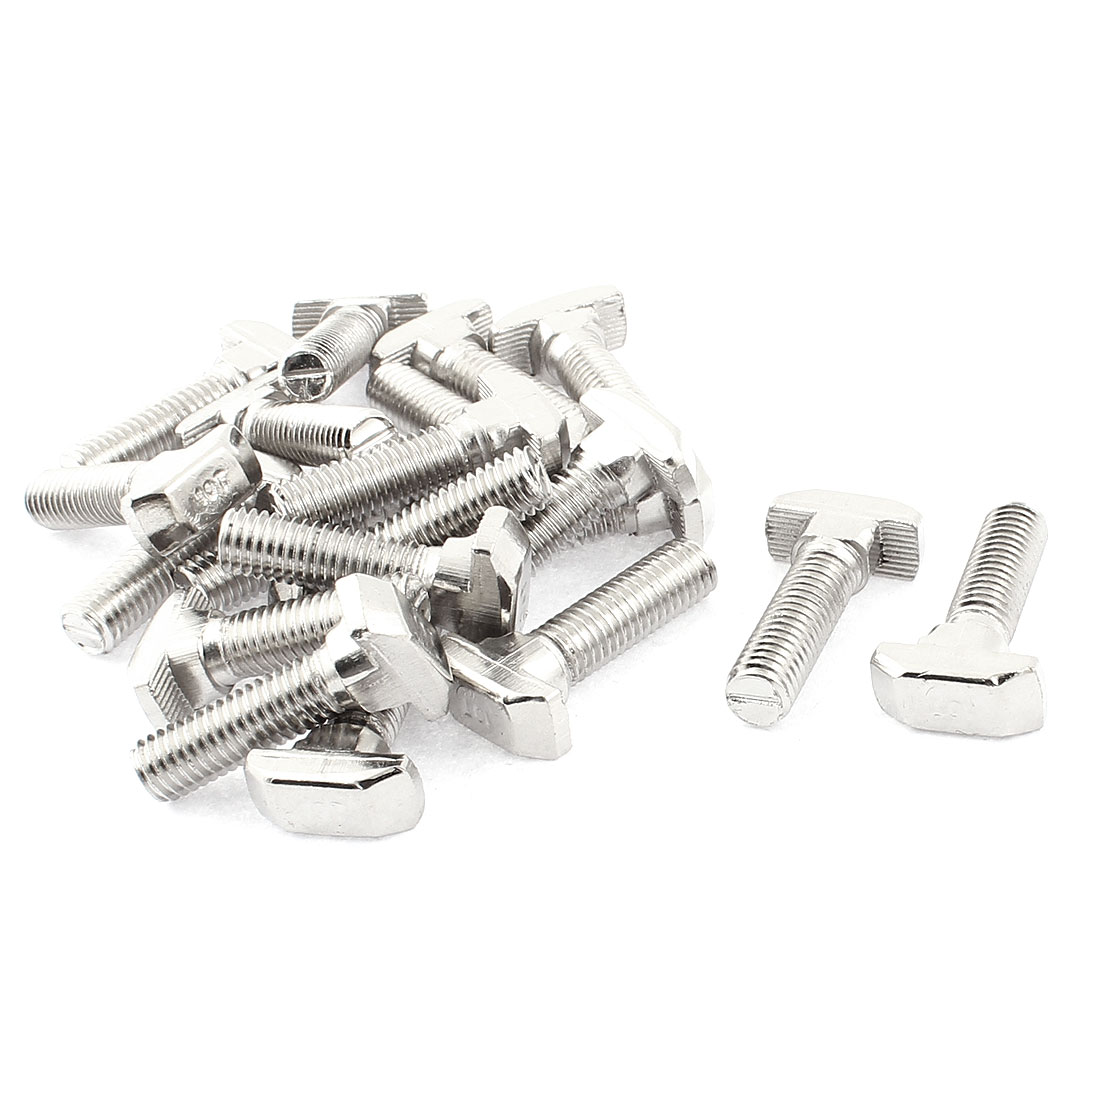 M8 x 30mm Metal T Slot Drop-in Stud Sliding Bolt Screw Silver Tone 20pcs